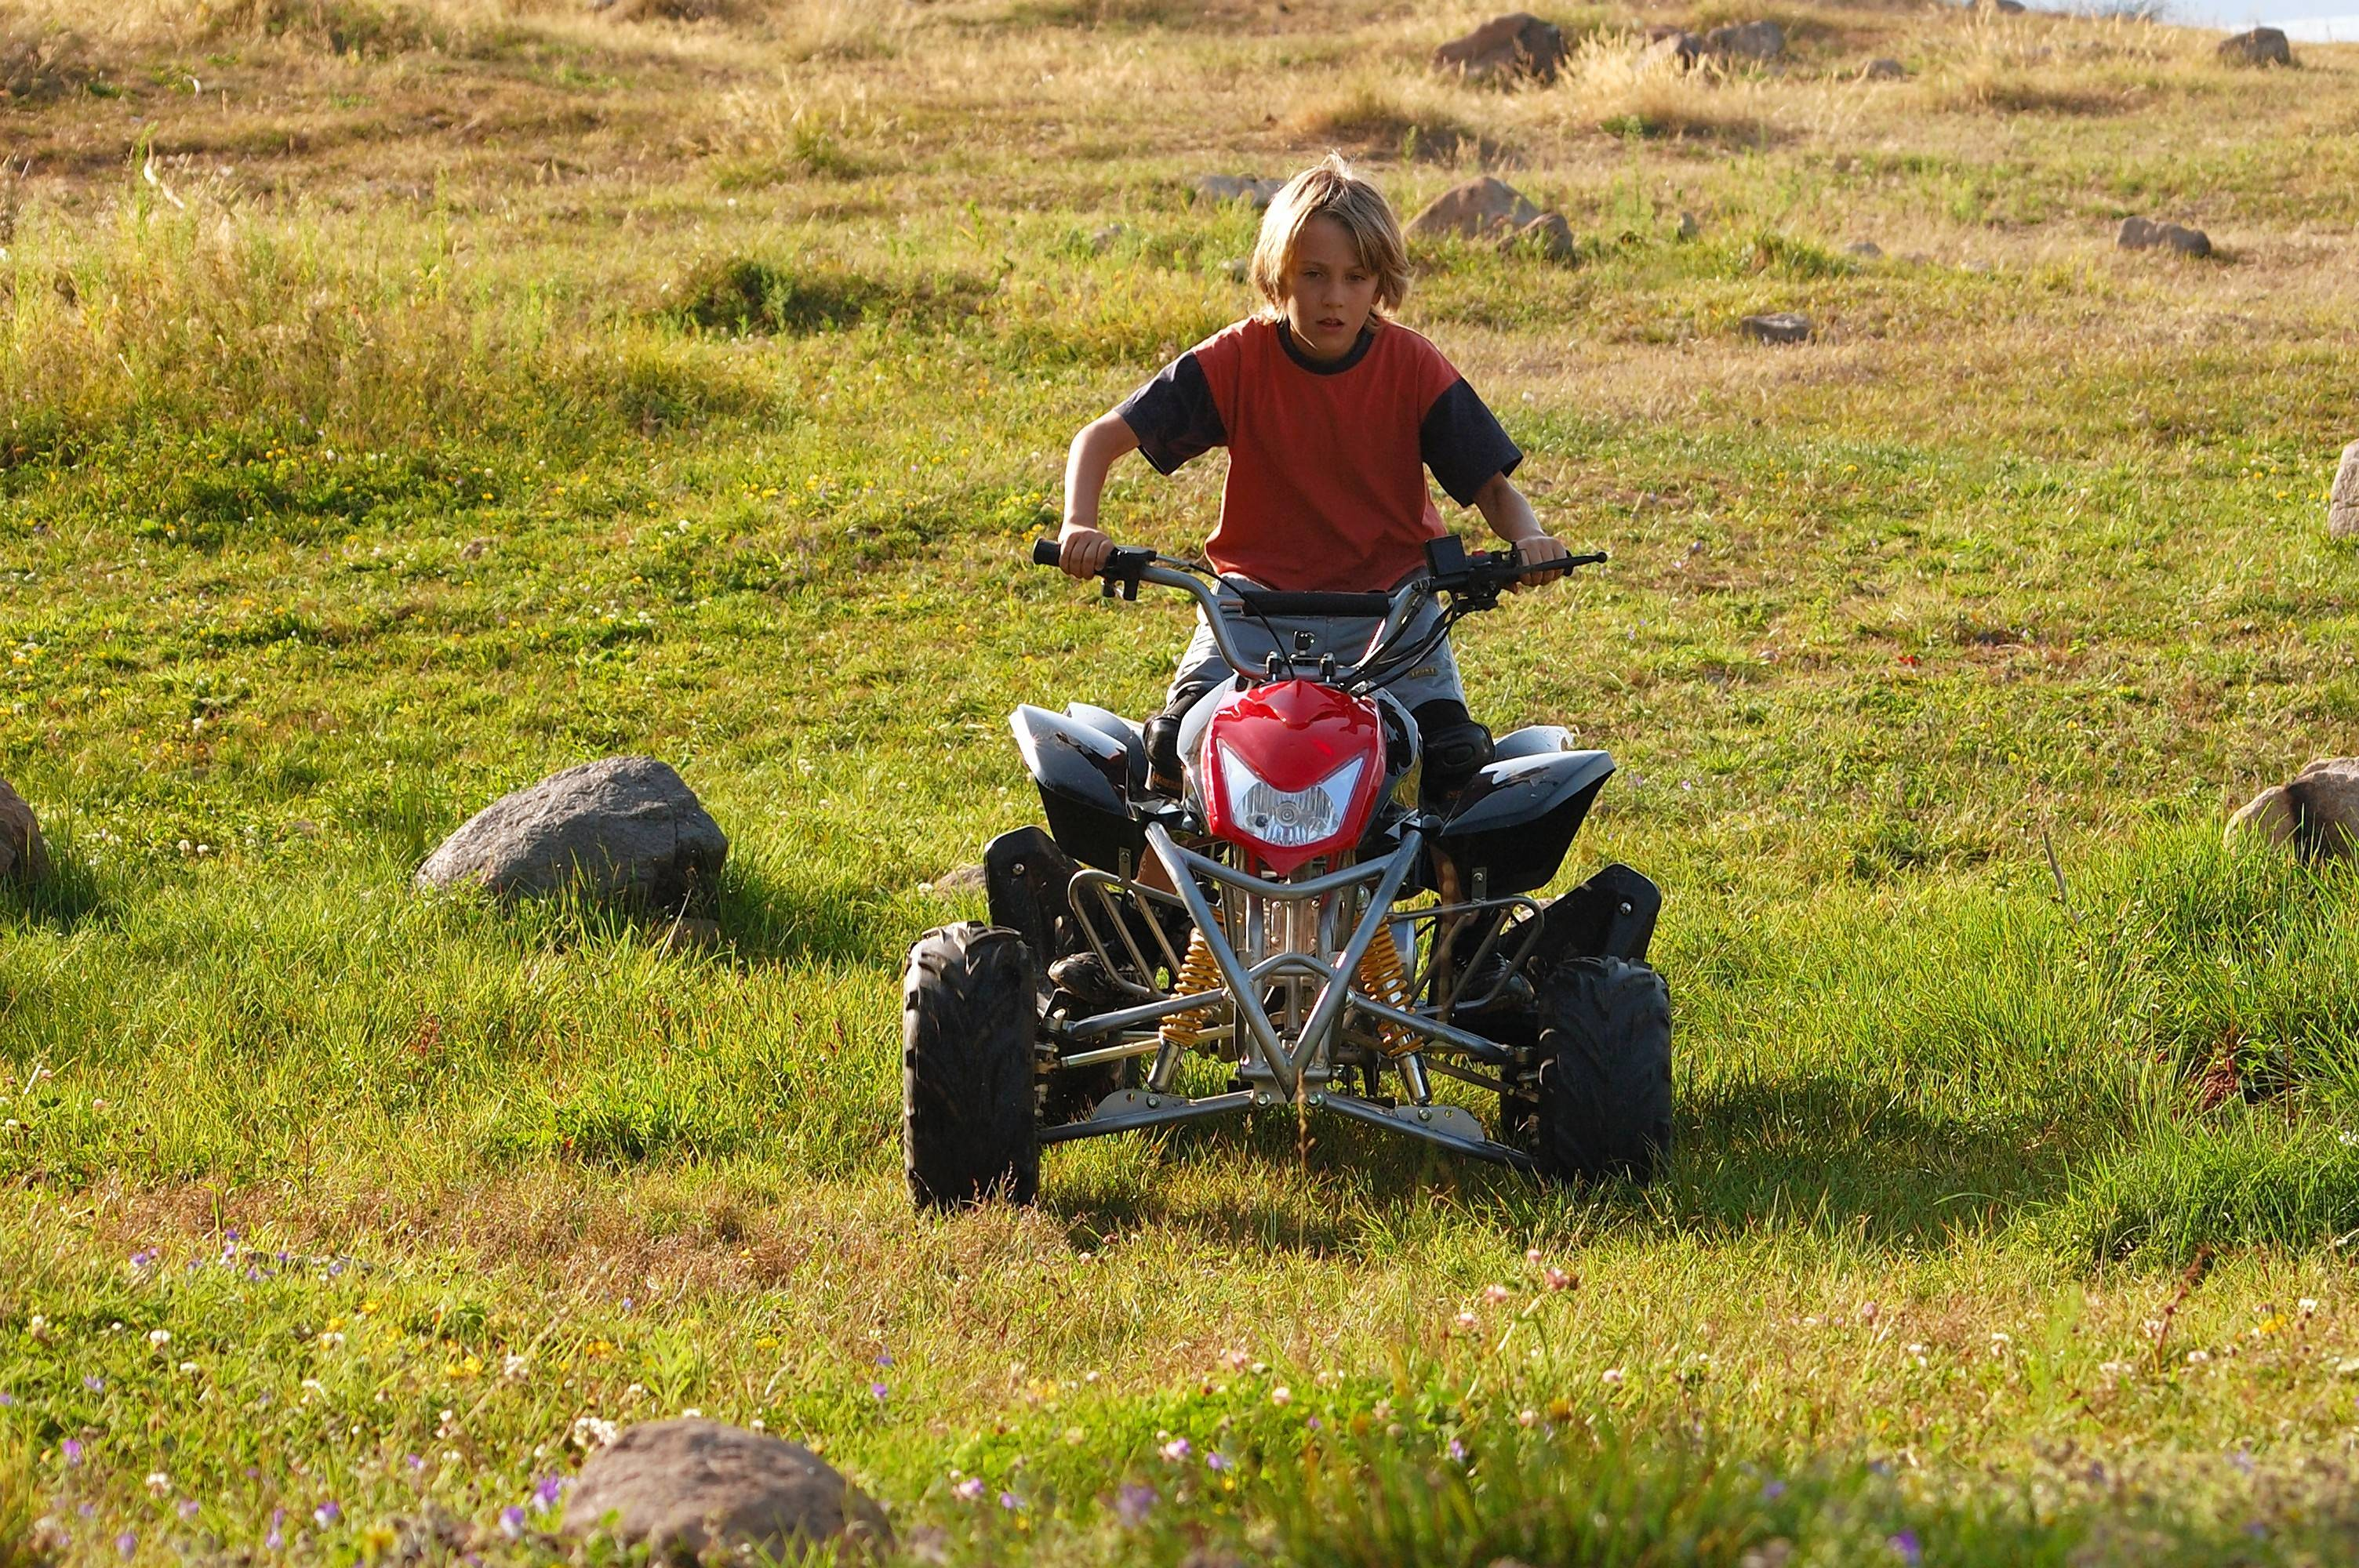 The American Academy of Pediatrics warns that children under 16 should not use ATVs.